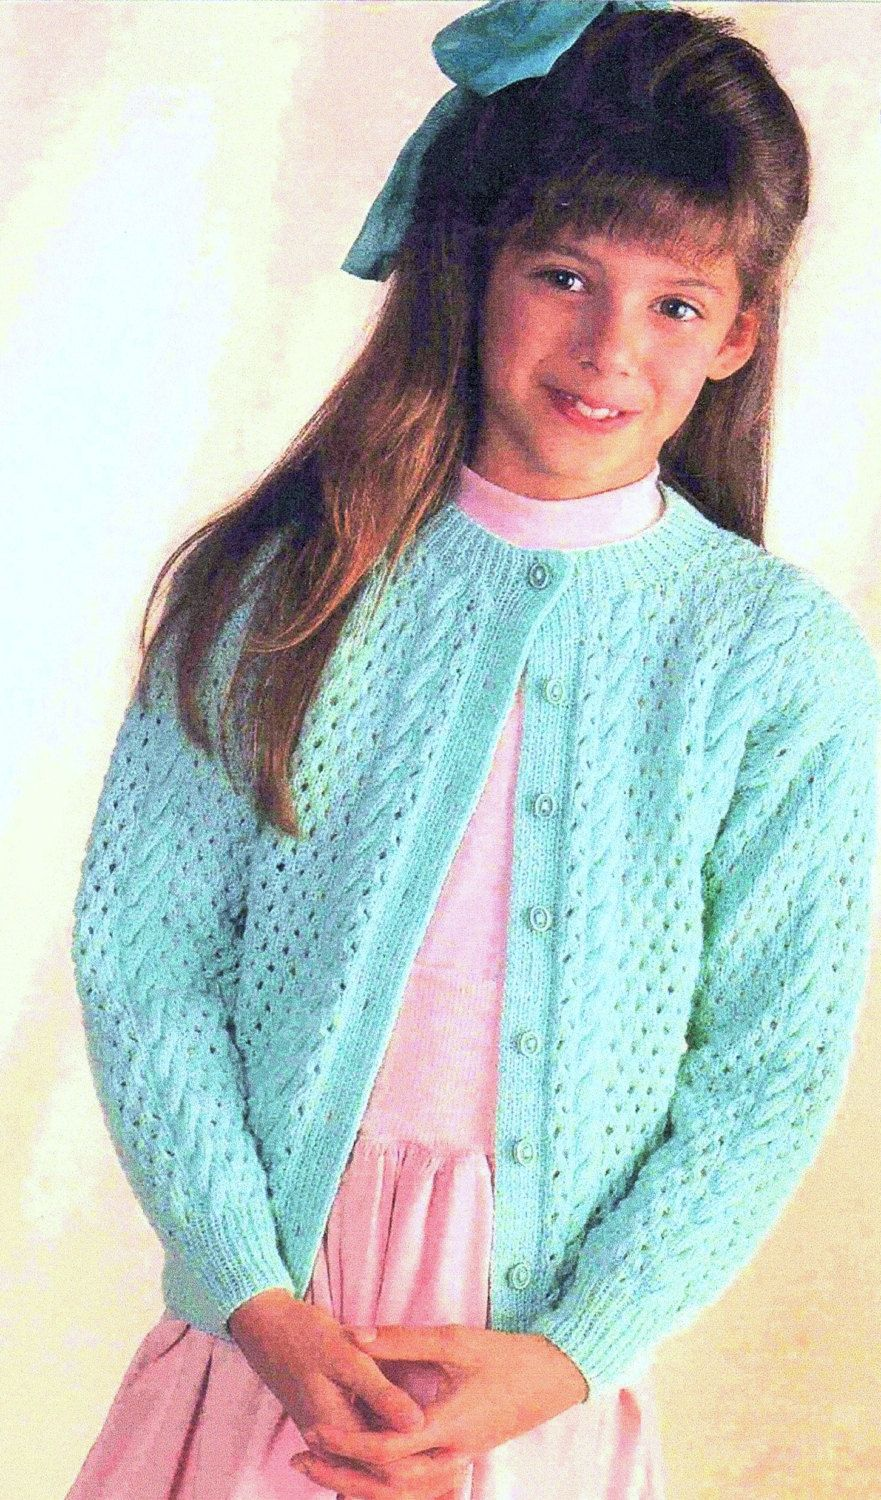 Instant Download PDF Knitting Pattern to make a Girls and Teenage Eyelet Sweater Round Neck 3 Ply Yarn 6 Sizes Ages 4 to 14 years